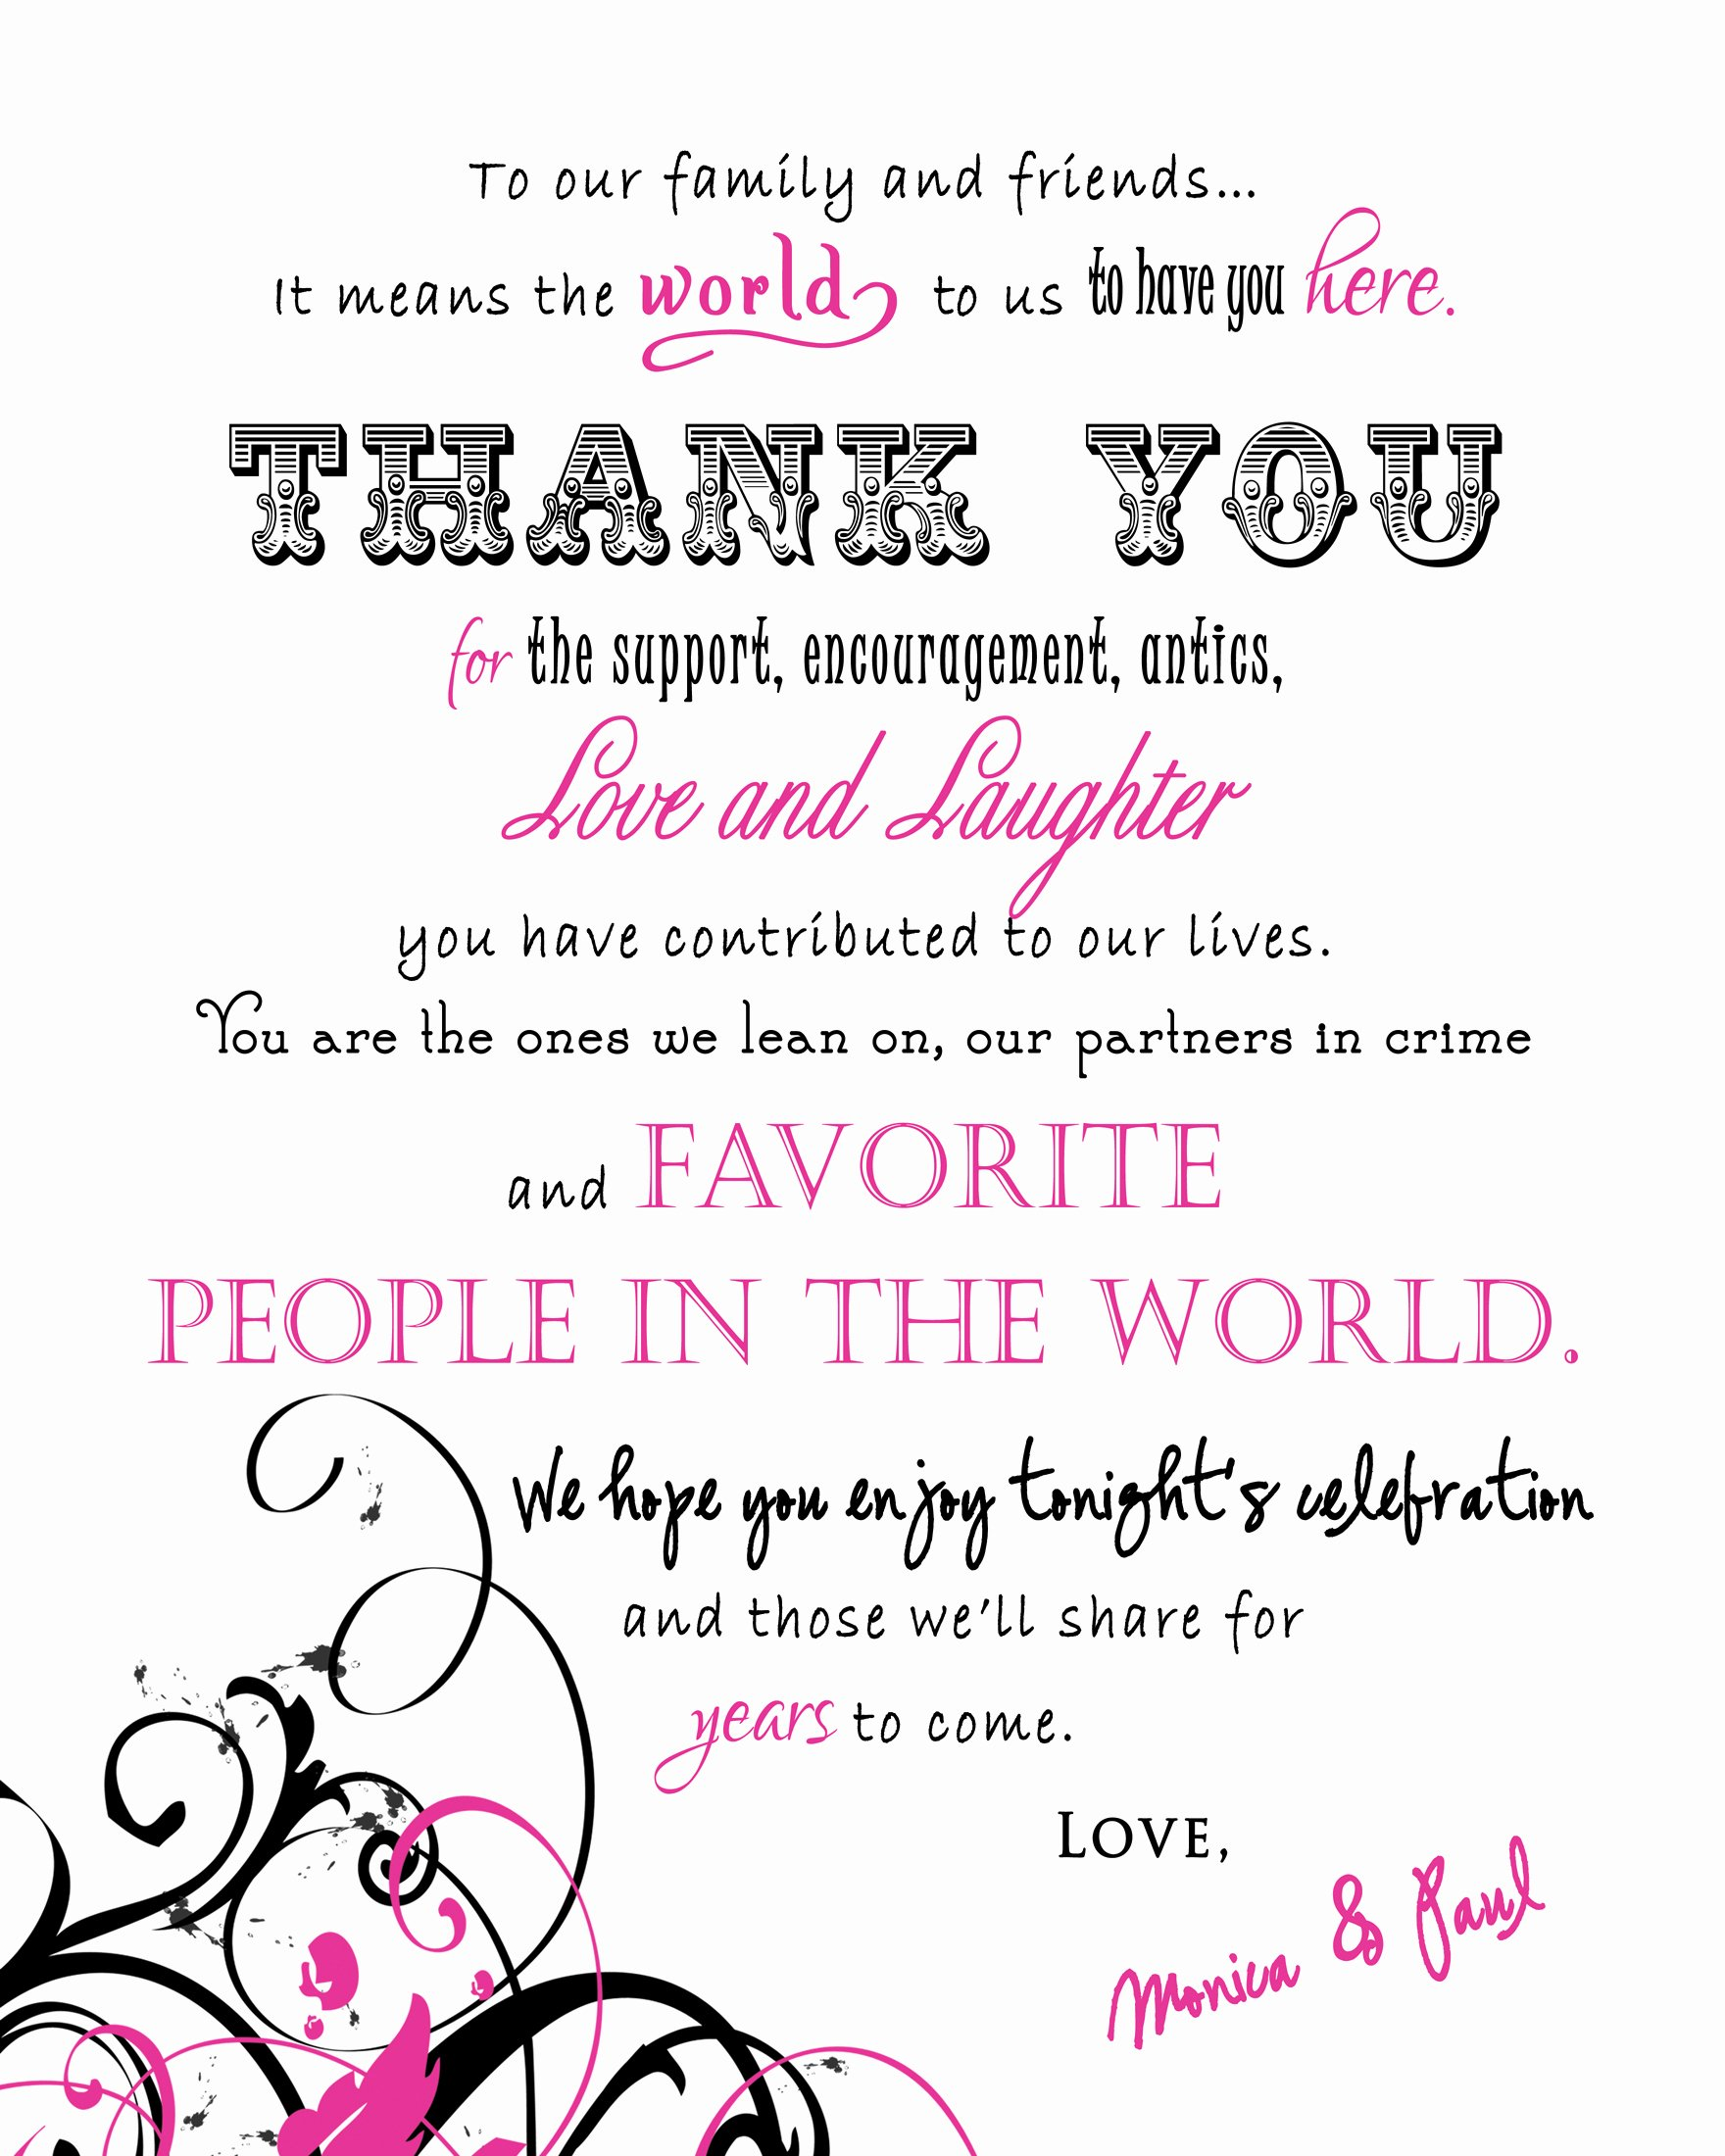 Hospitality Thank You Notes Luxury Stationery Ideas for Your Wedding Day – Las Vegas Wedding